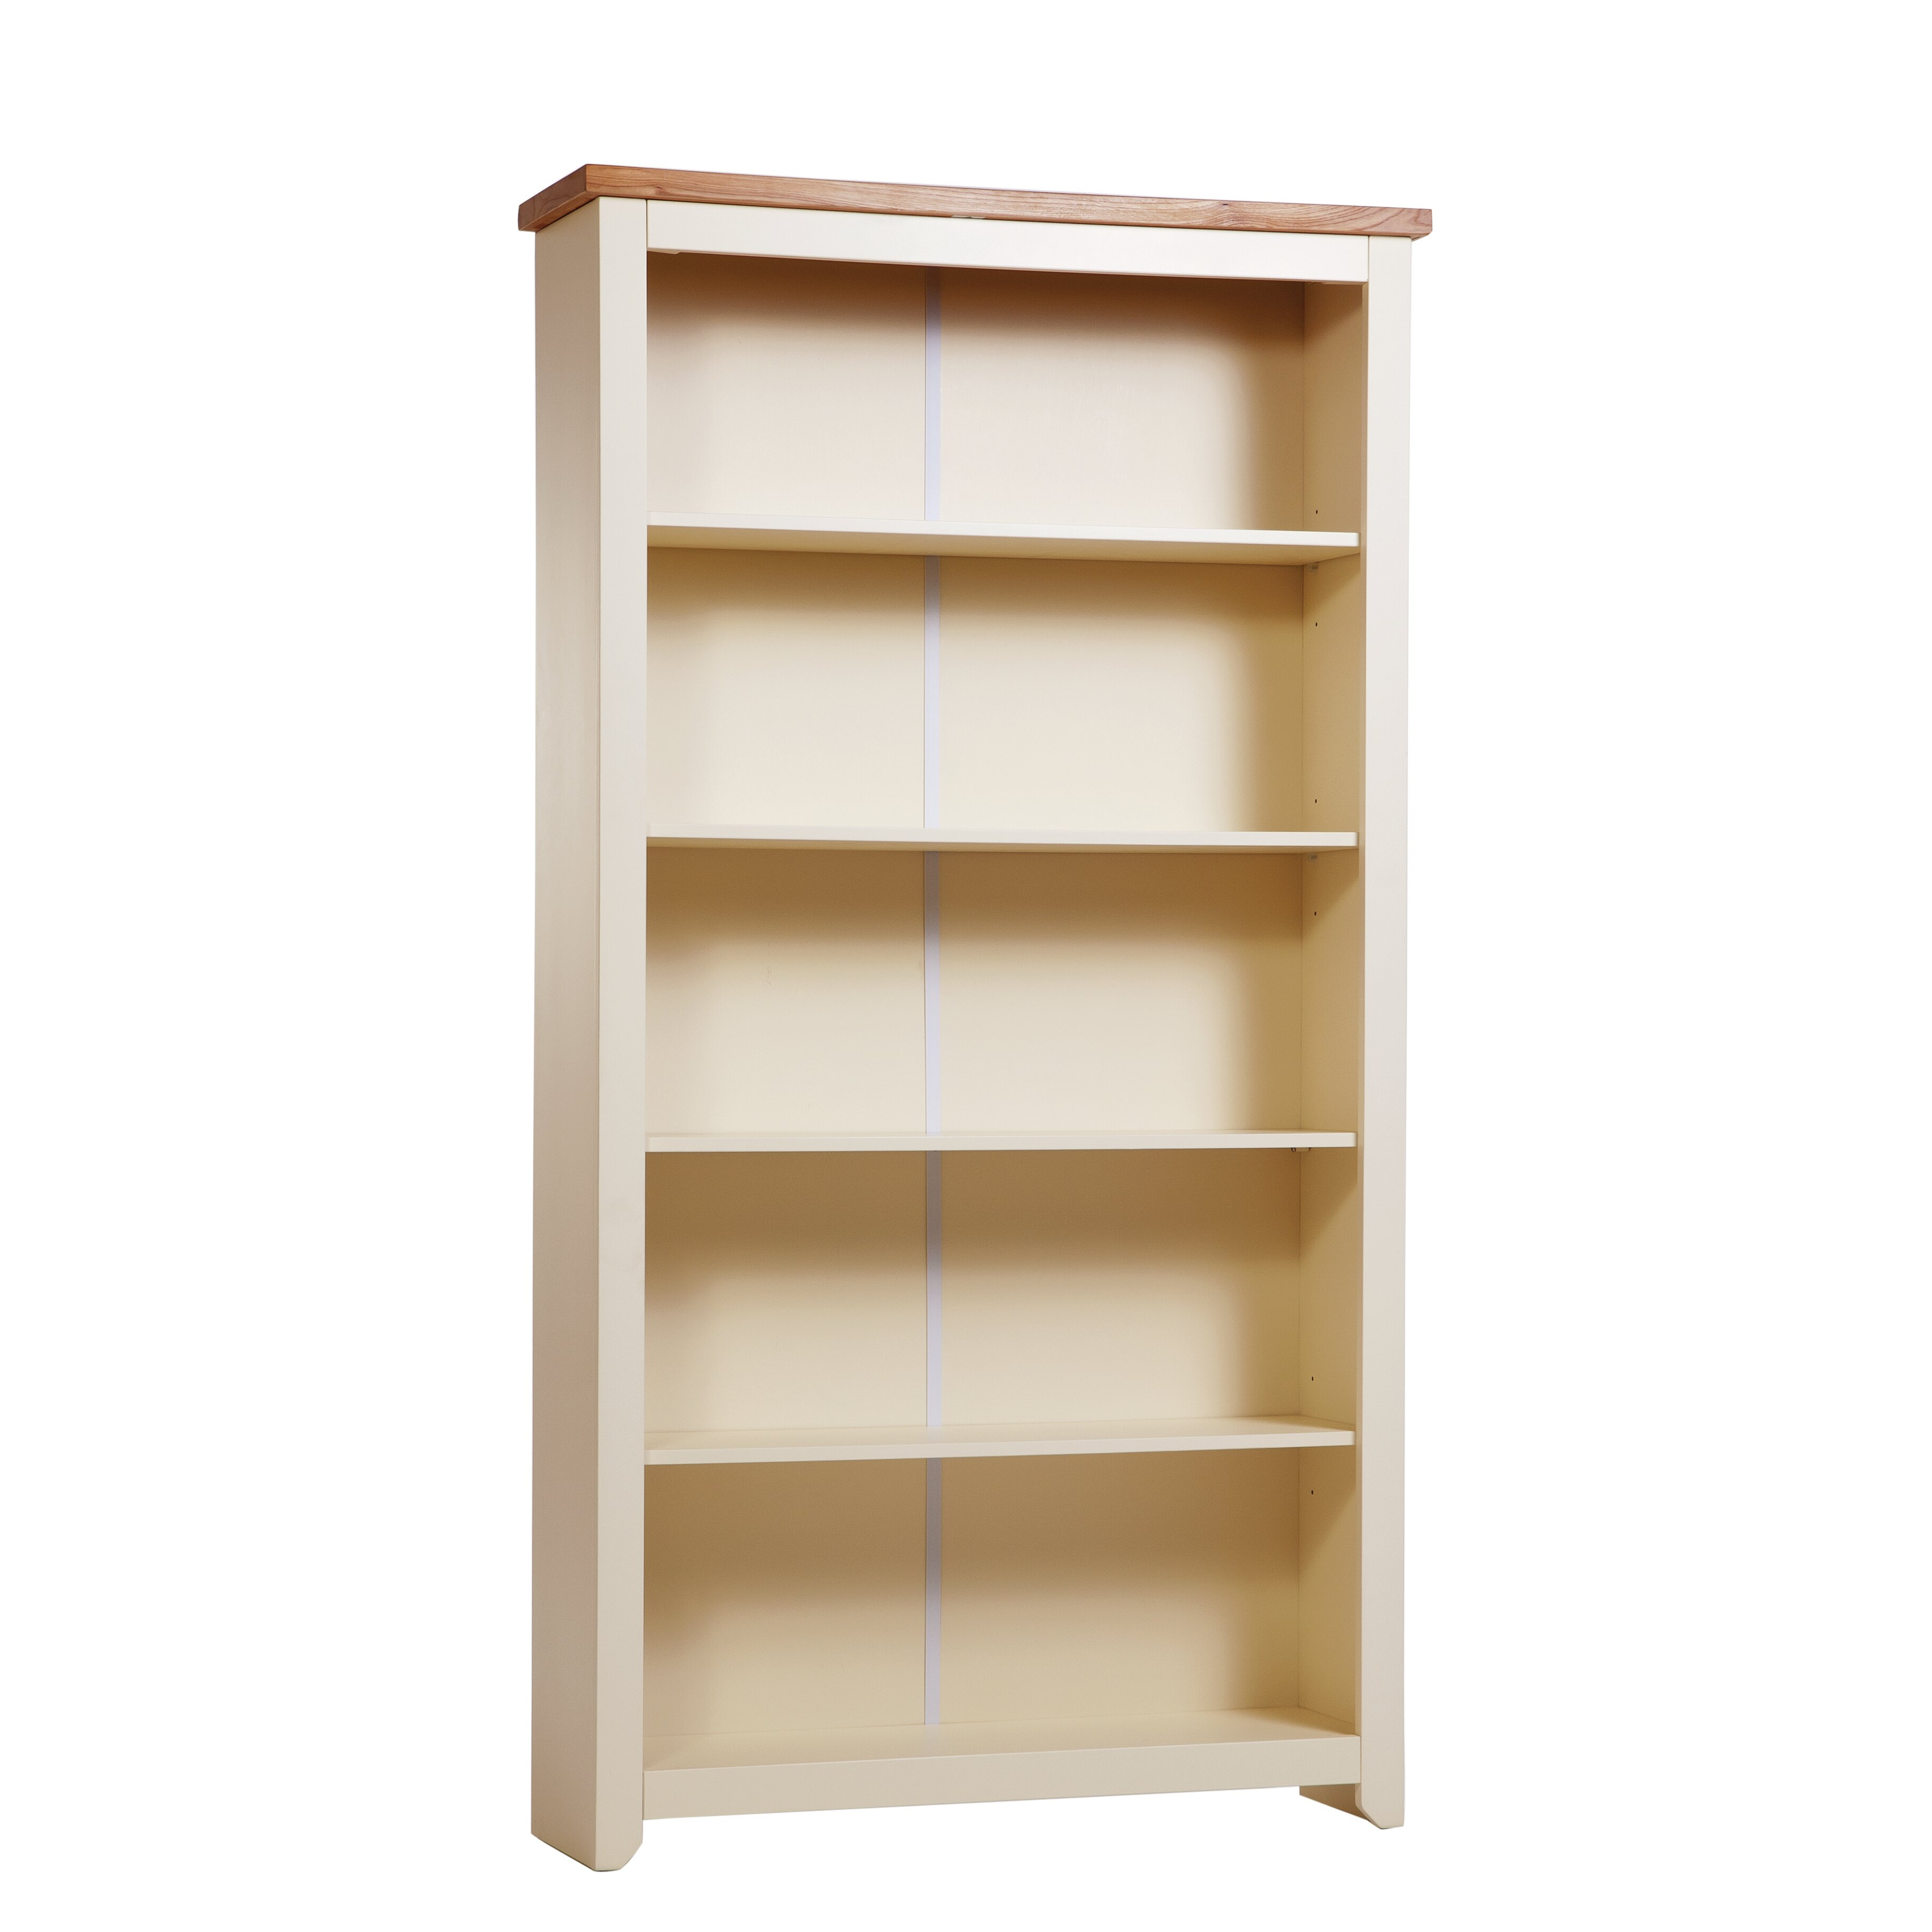 Wonderful image of  Haus Corvette Tall Wide 177cm Standard Bookcase & Reviews Wayfair UK with #50250C color and 3648x3648 pixels